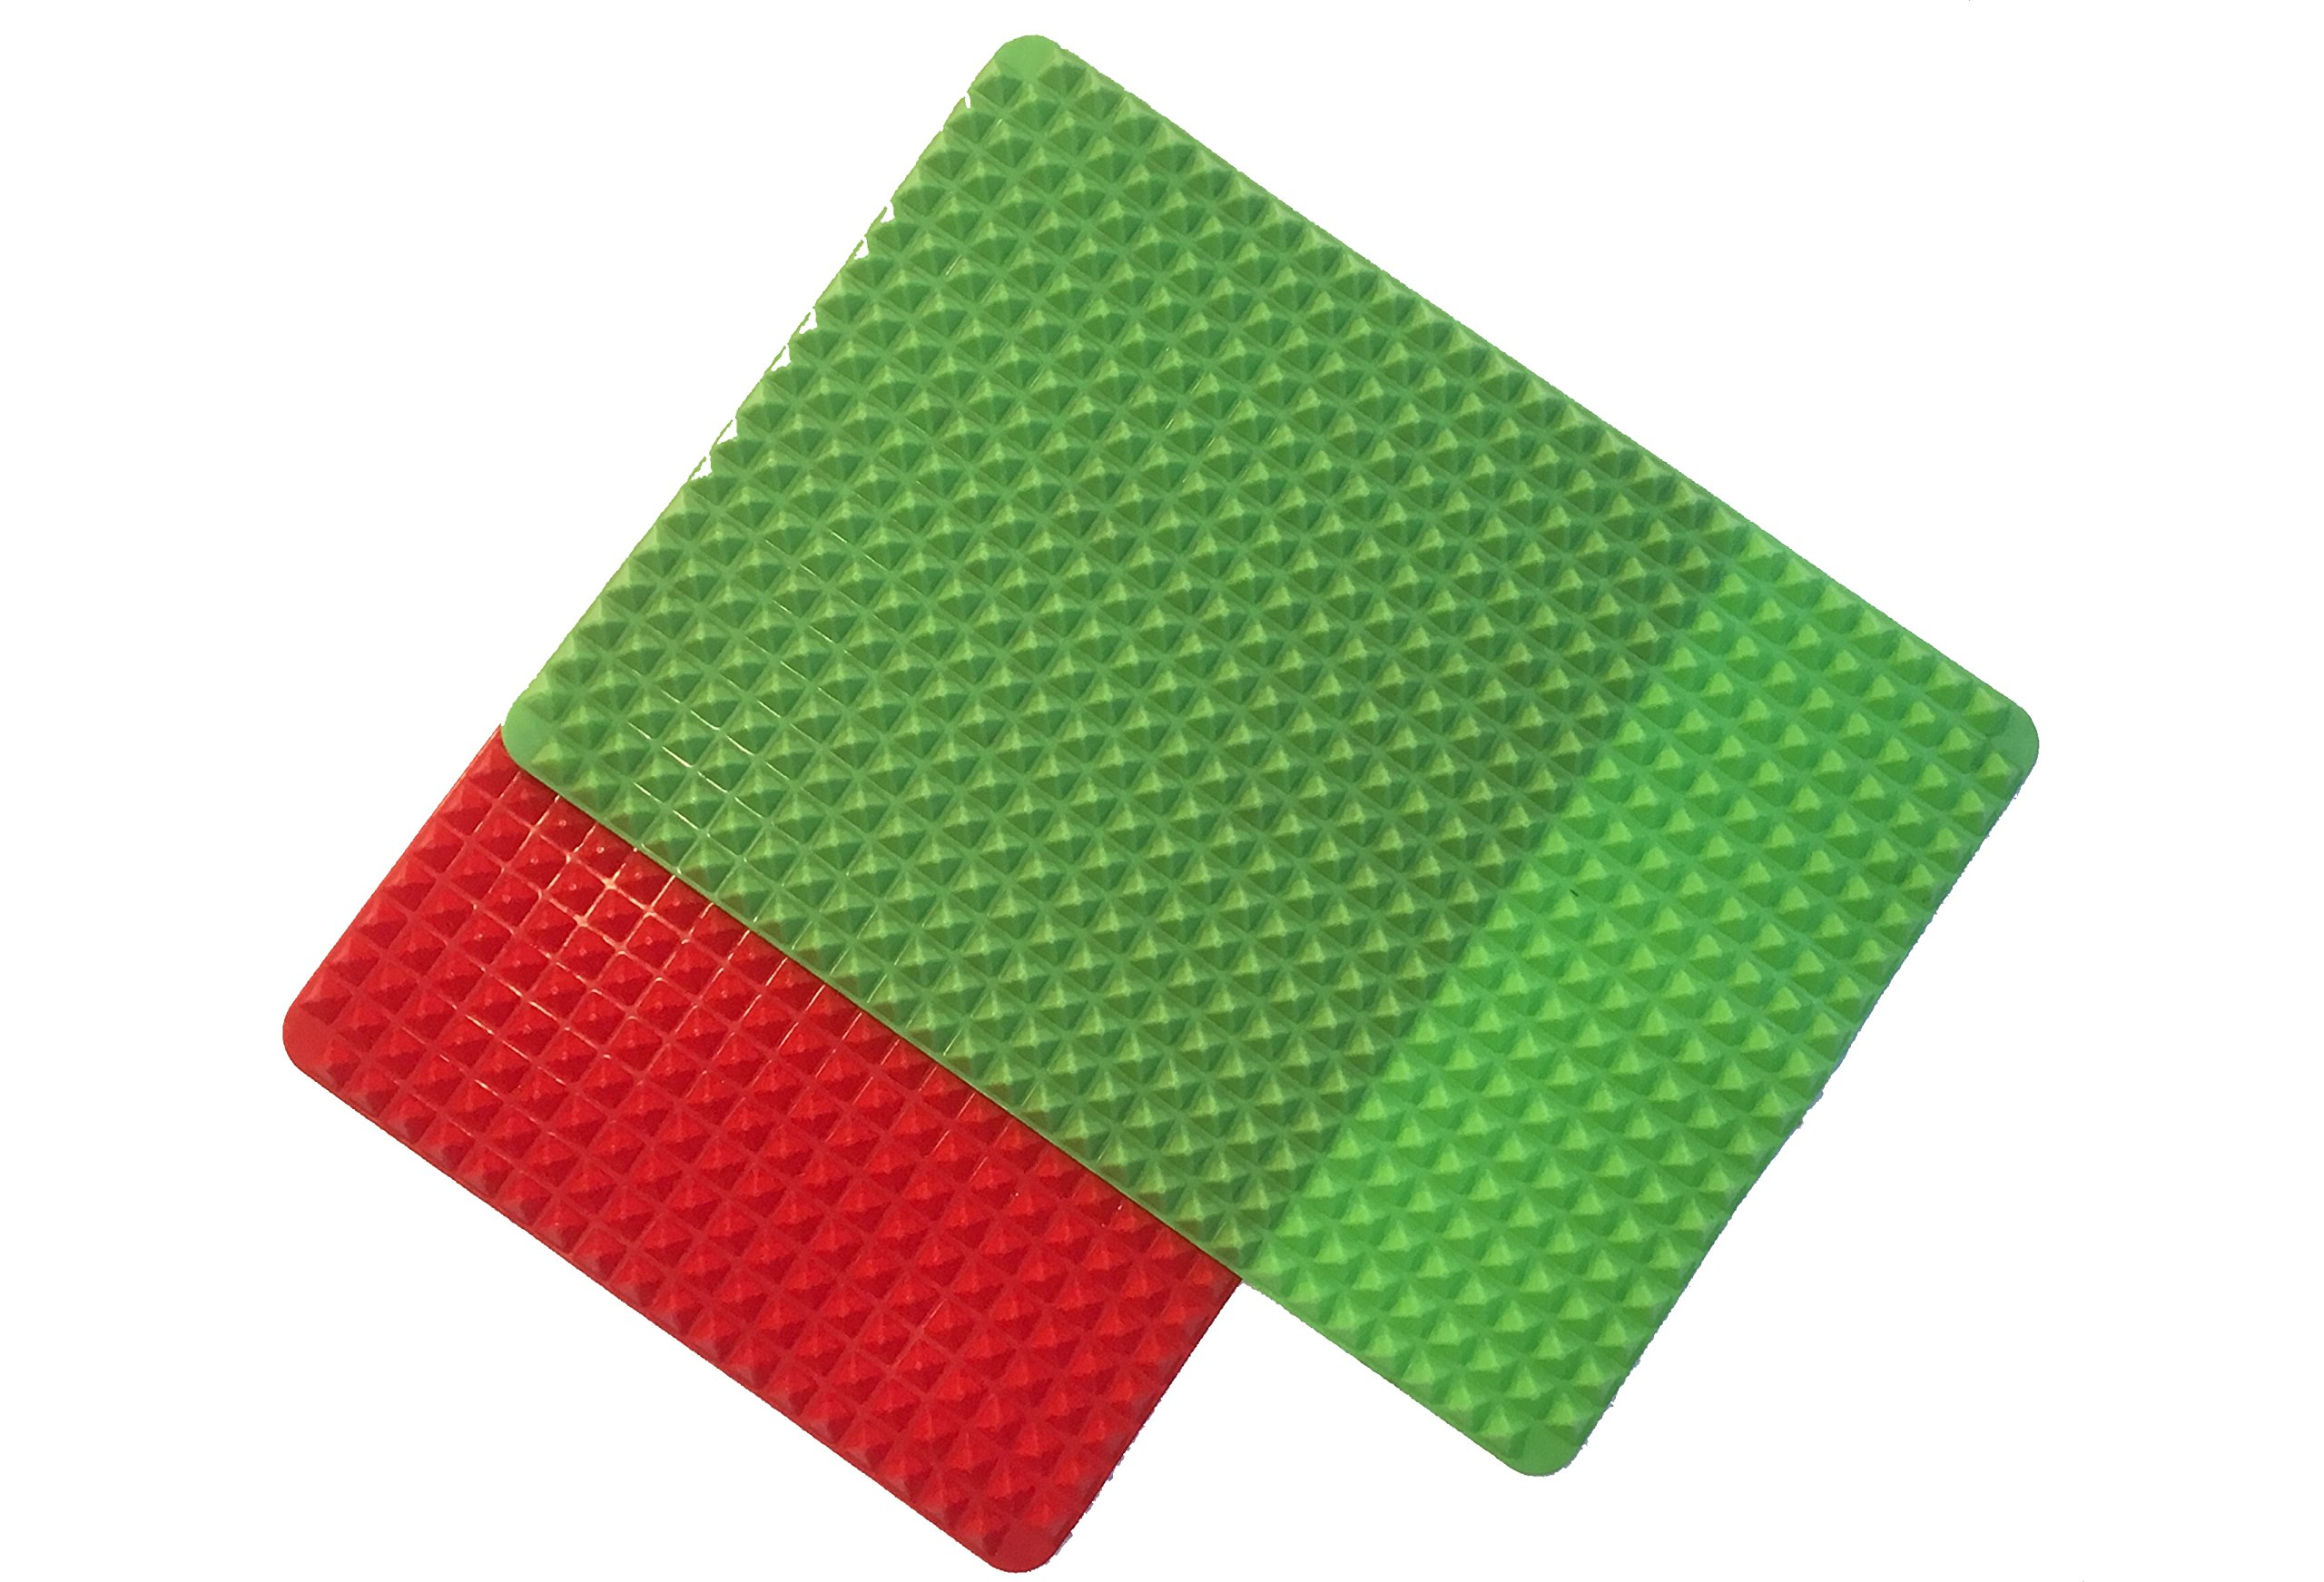 Pyramid Pan Silicone Baking Mat Set of 2 (Green and Red). Non-stick, Half Sheet, Fat Reducing Mats for Healthy Cooking.